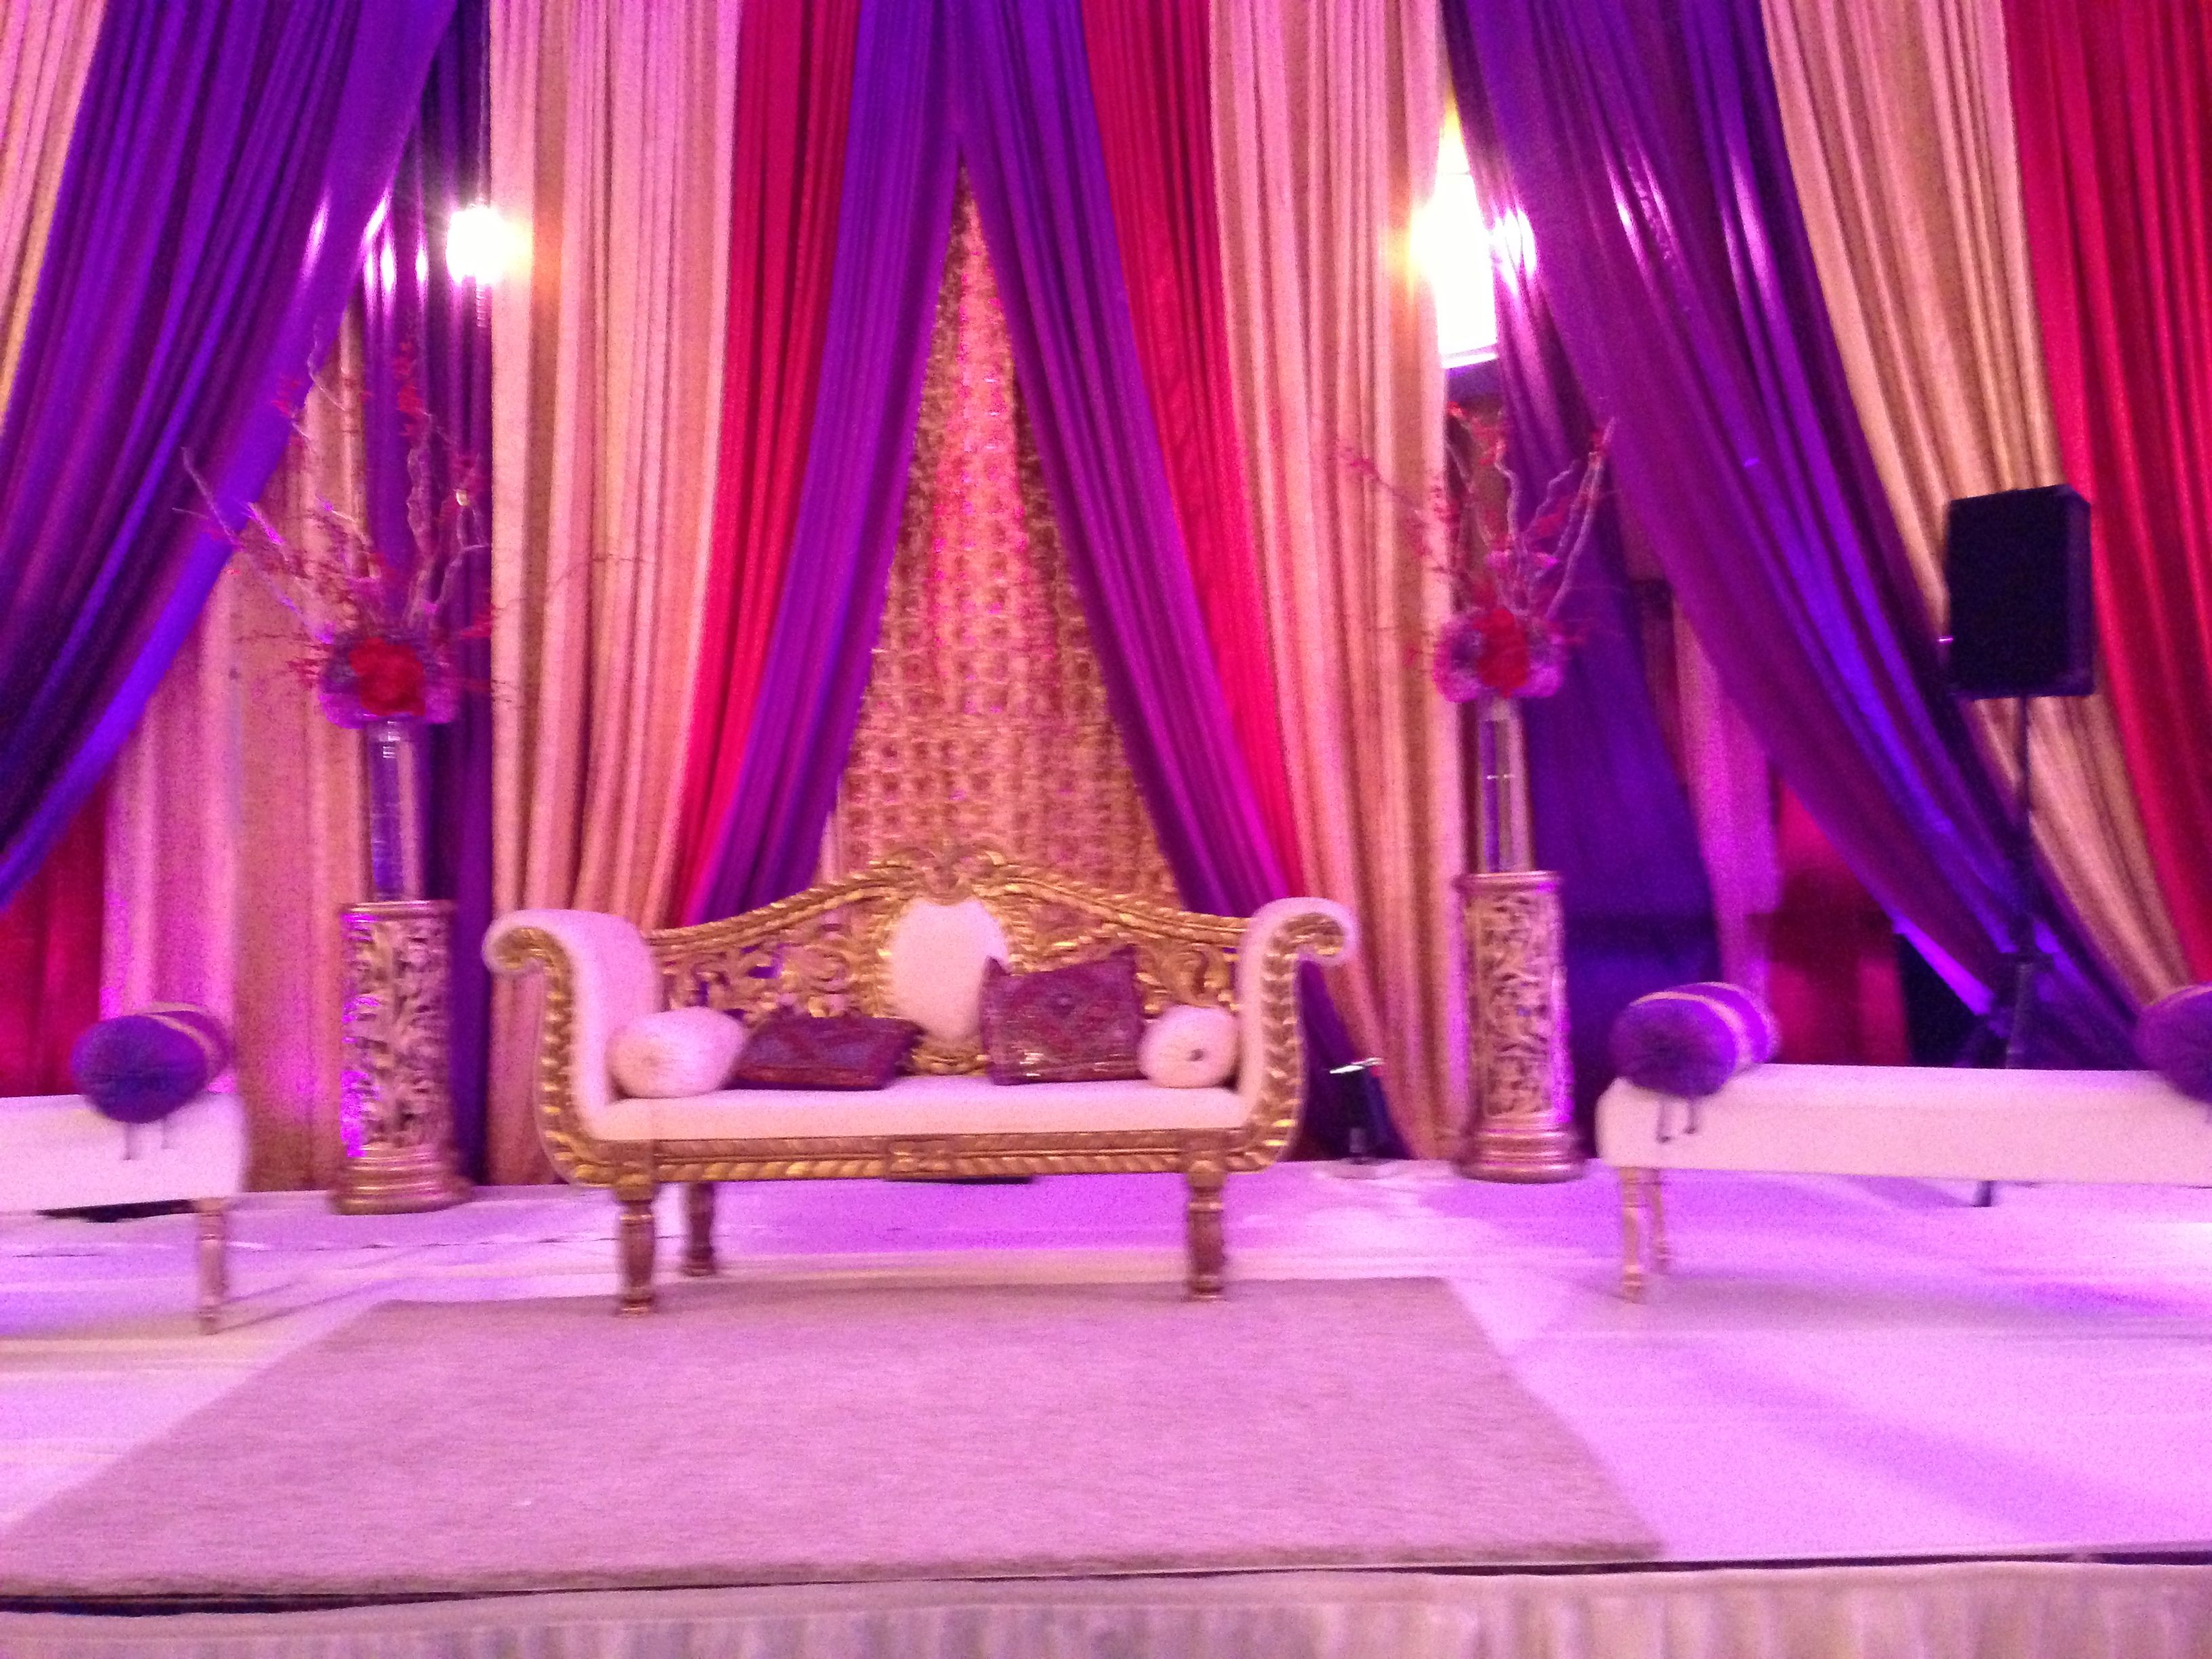 Royal wedding stage decoration  Purple and red wedding shaadi decor stage settee  Royal purple